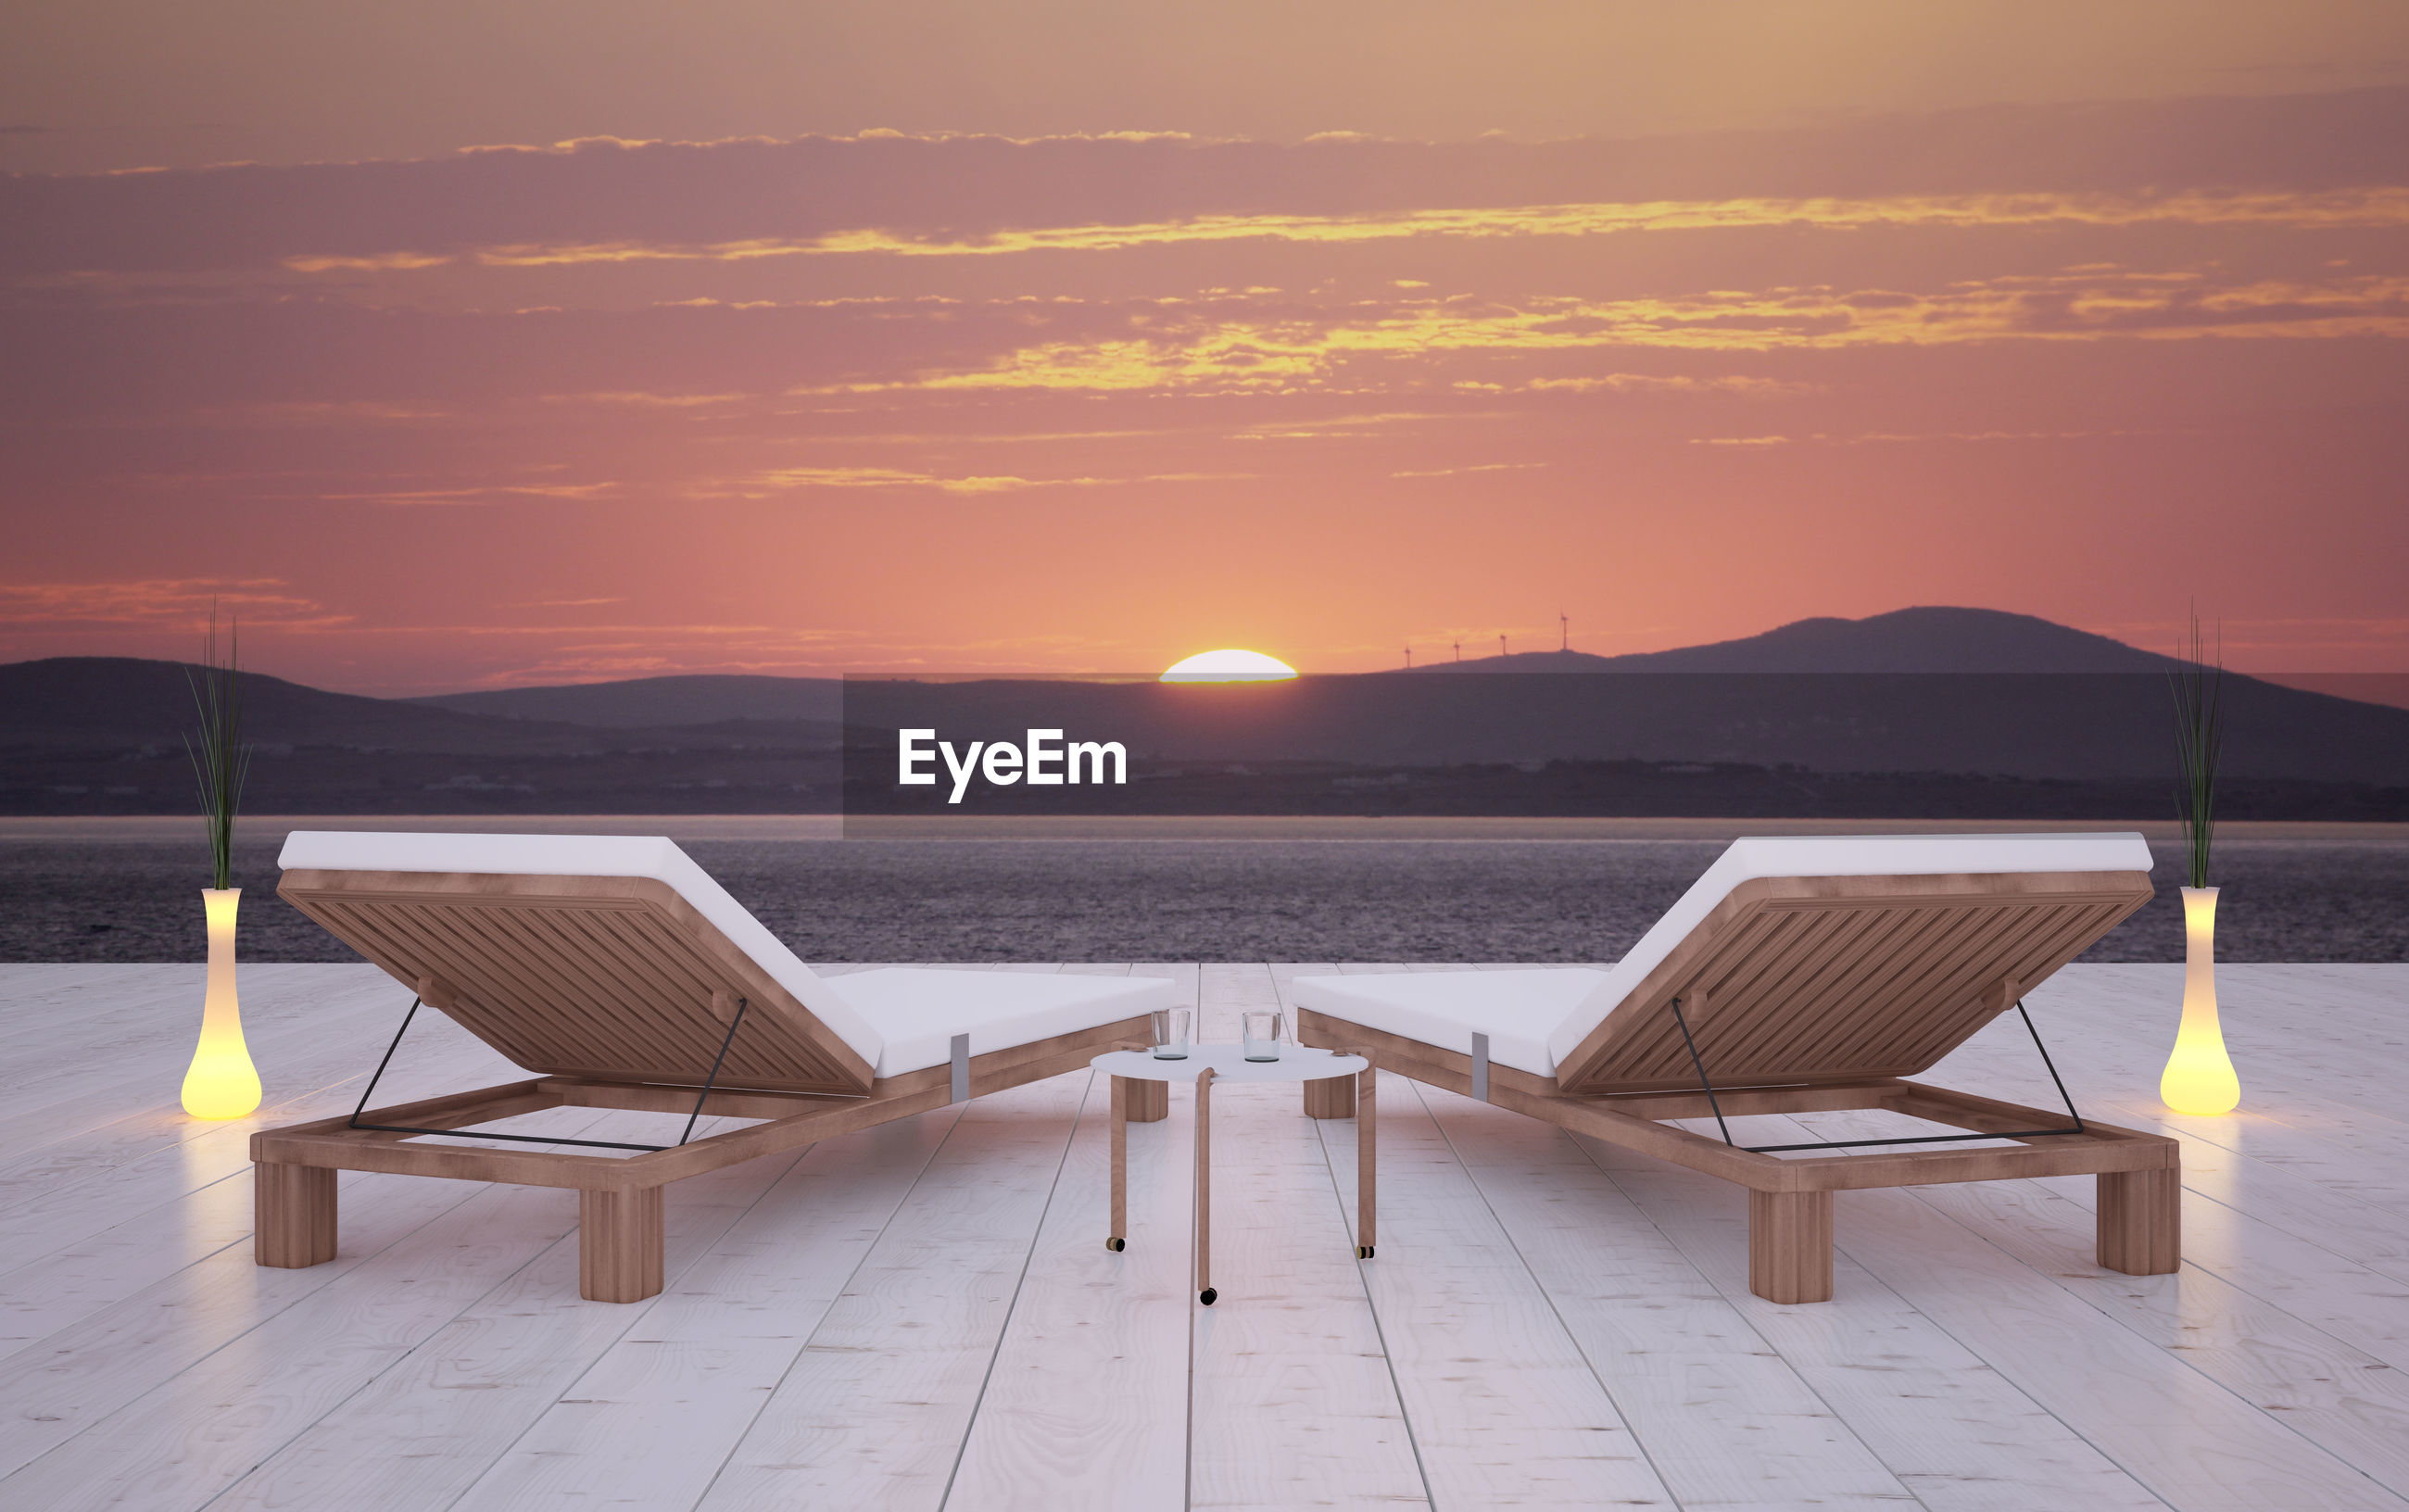 Chaise longue by sea against sky during sunset